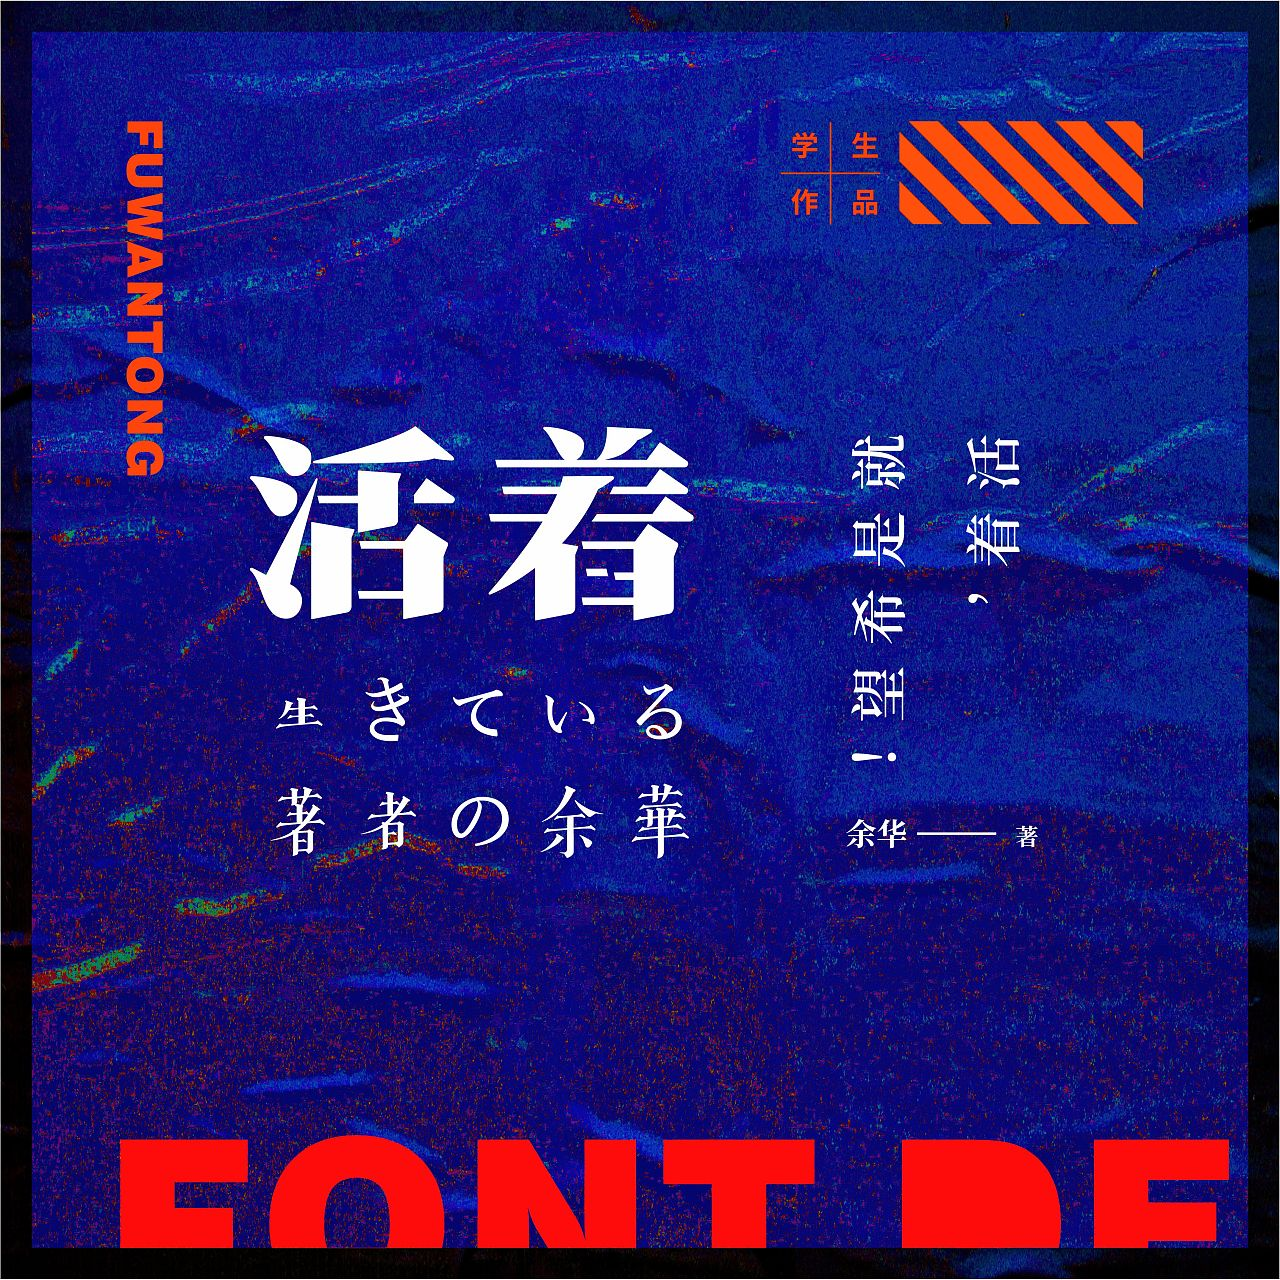 Chinese Creative Font Design-Outstanding Works of Students Shown in March